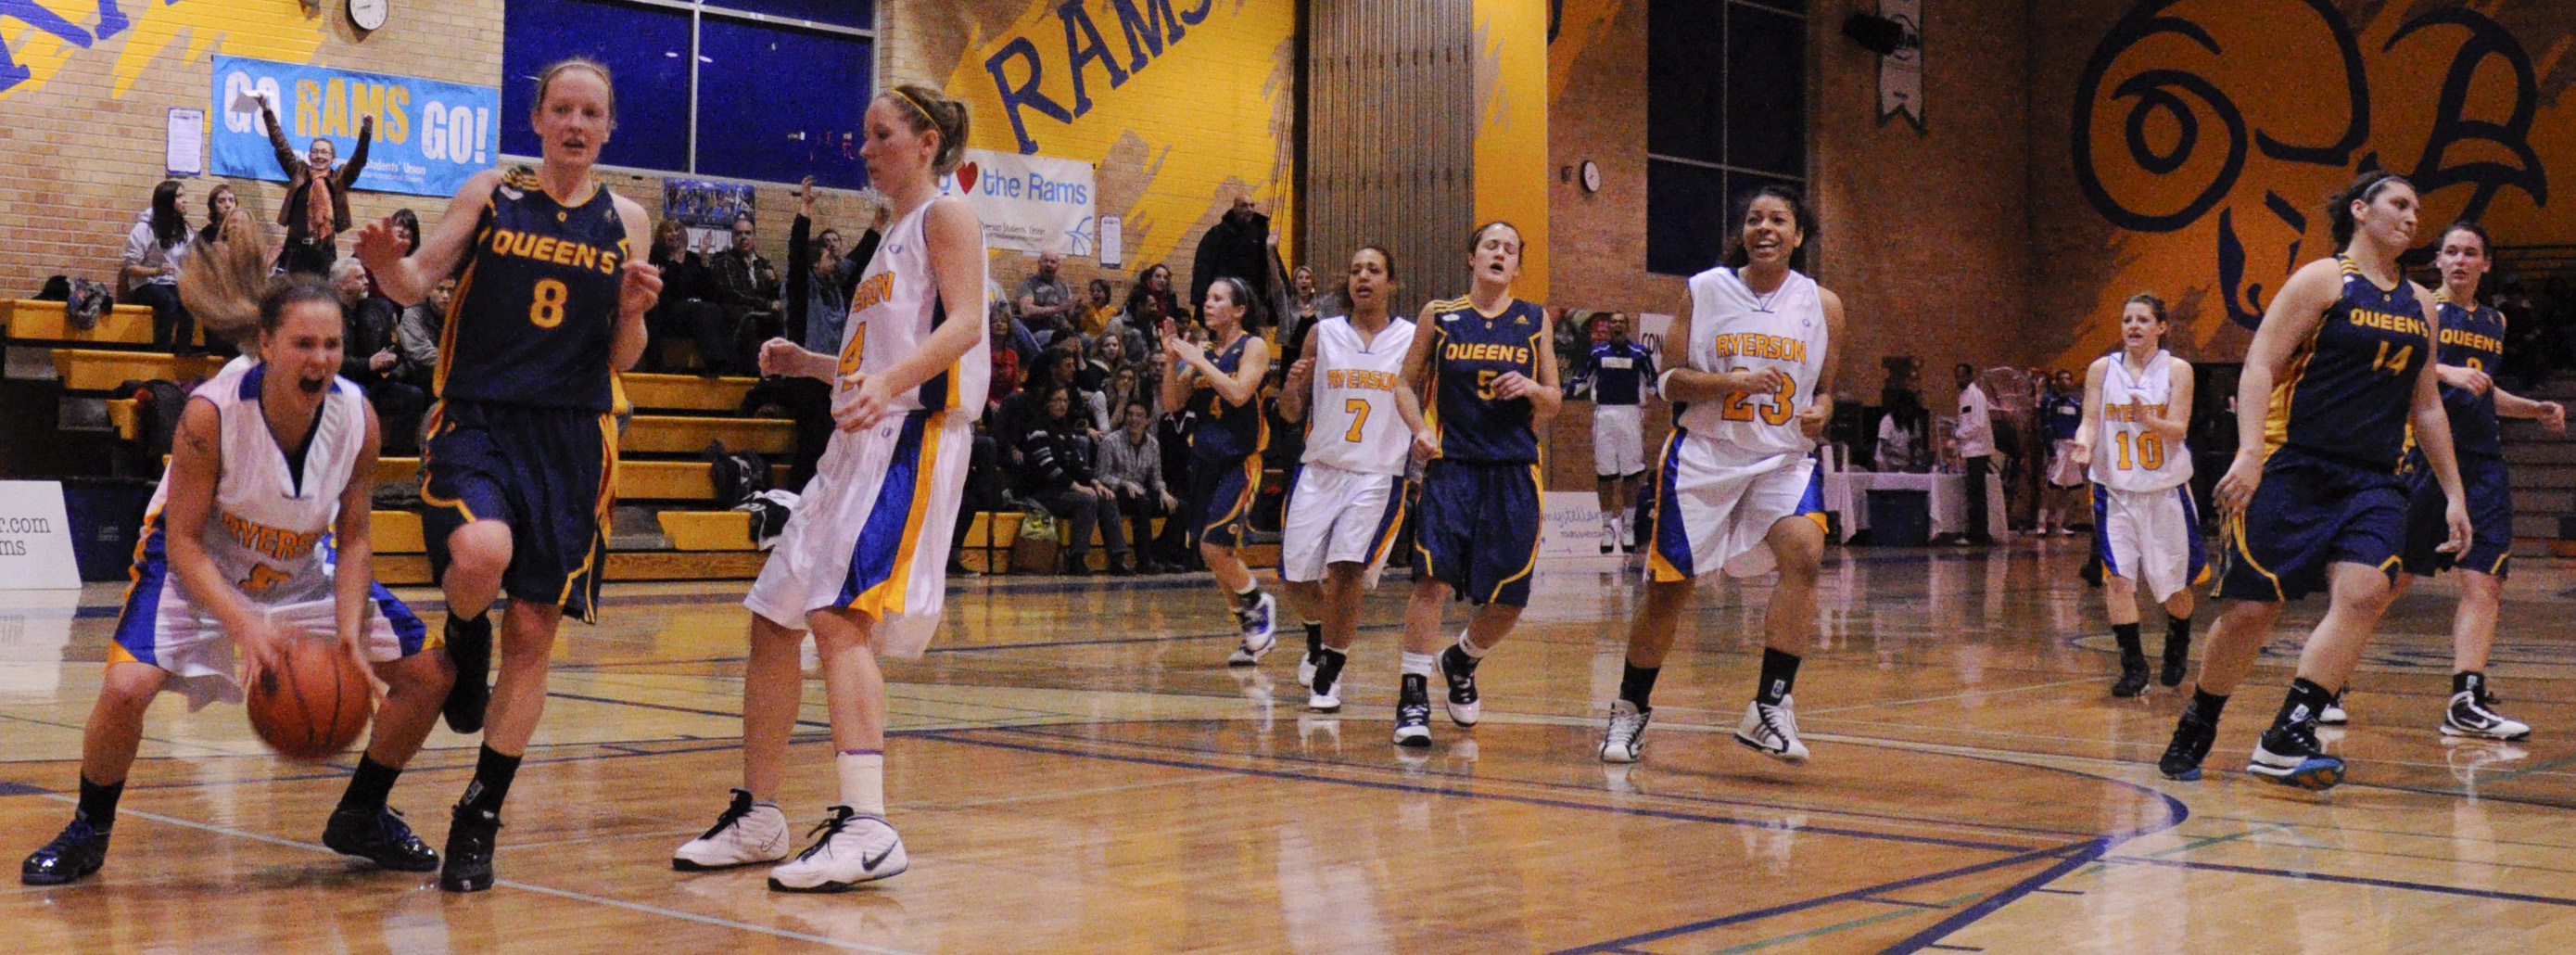 Women's Basketball Recap: Rams rally in second half to stun Gaels for O.T. win